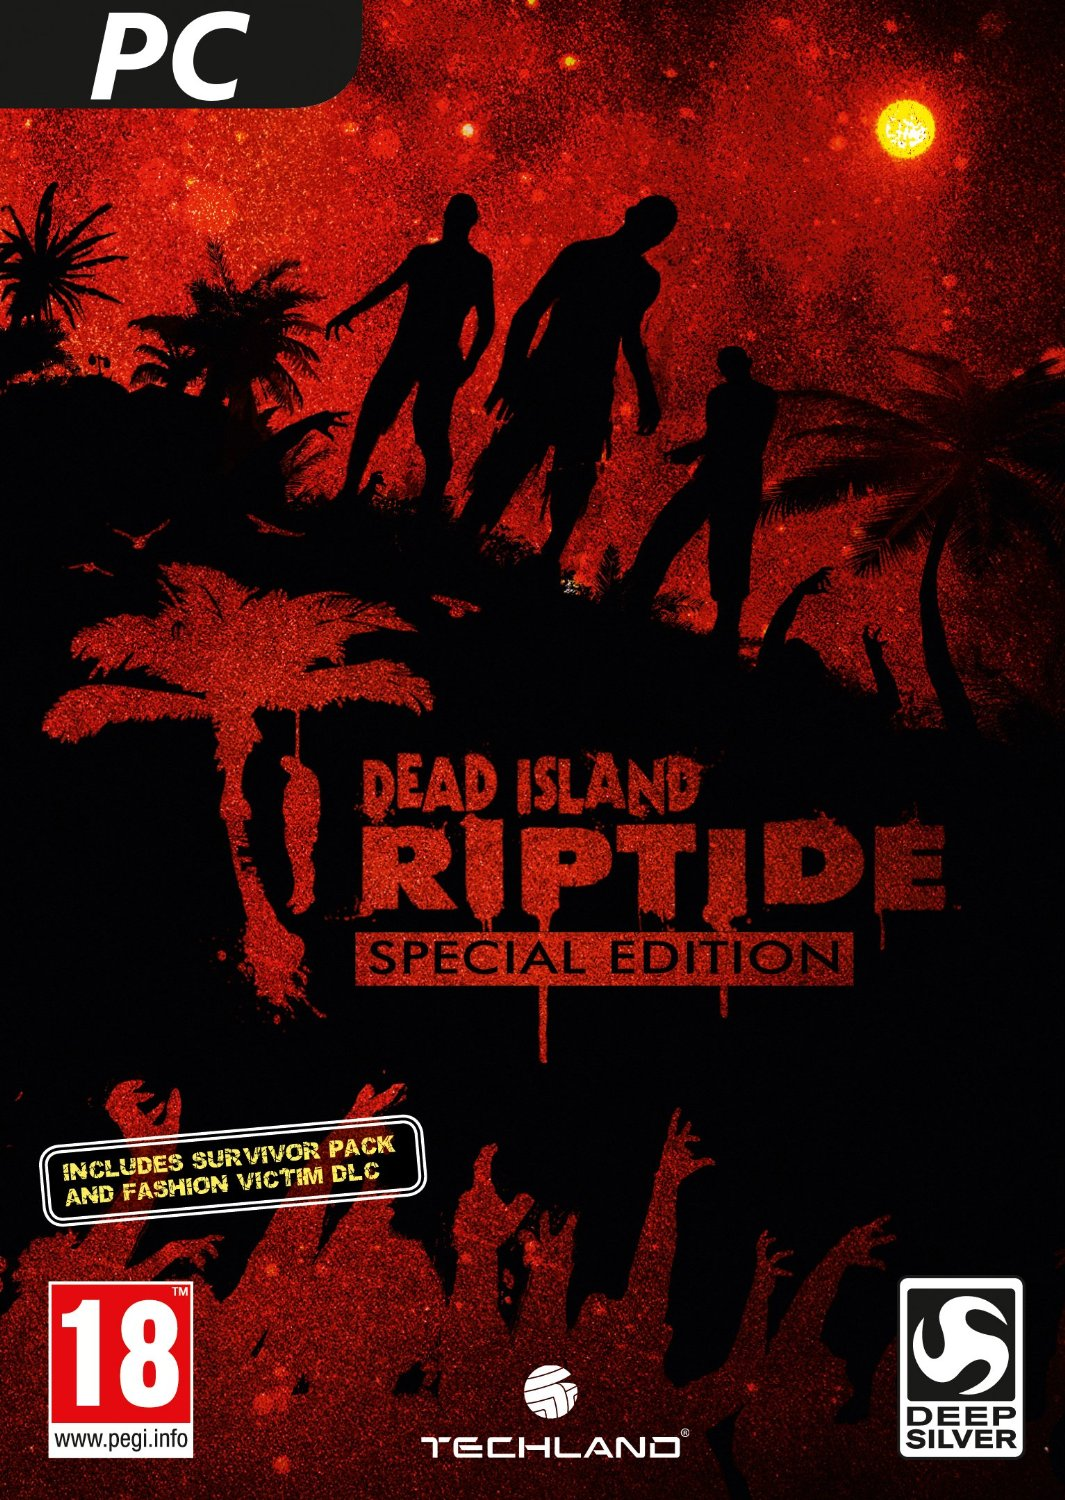 Poster for Dead Island: Riptide - Definitive Edition